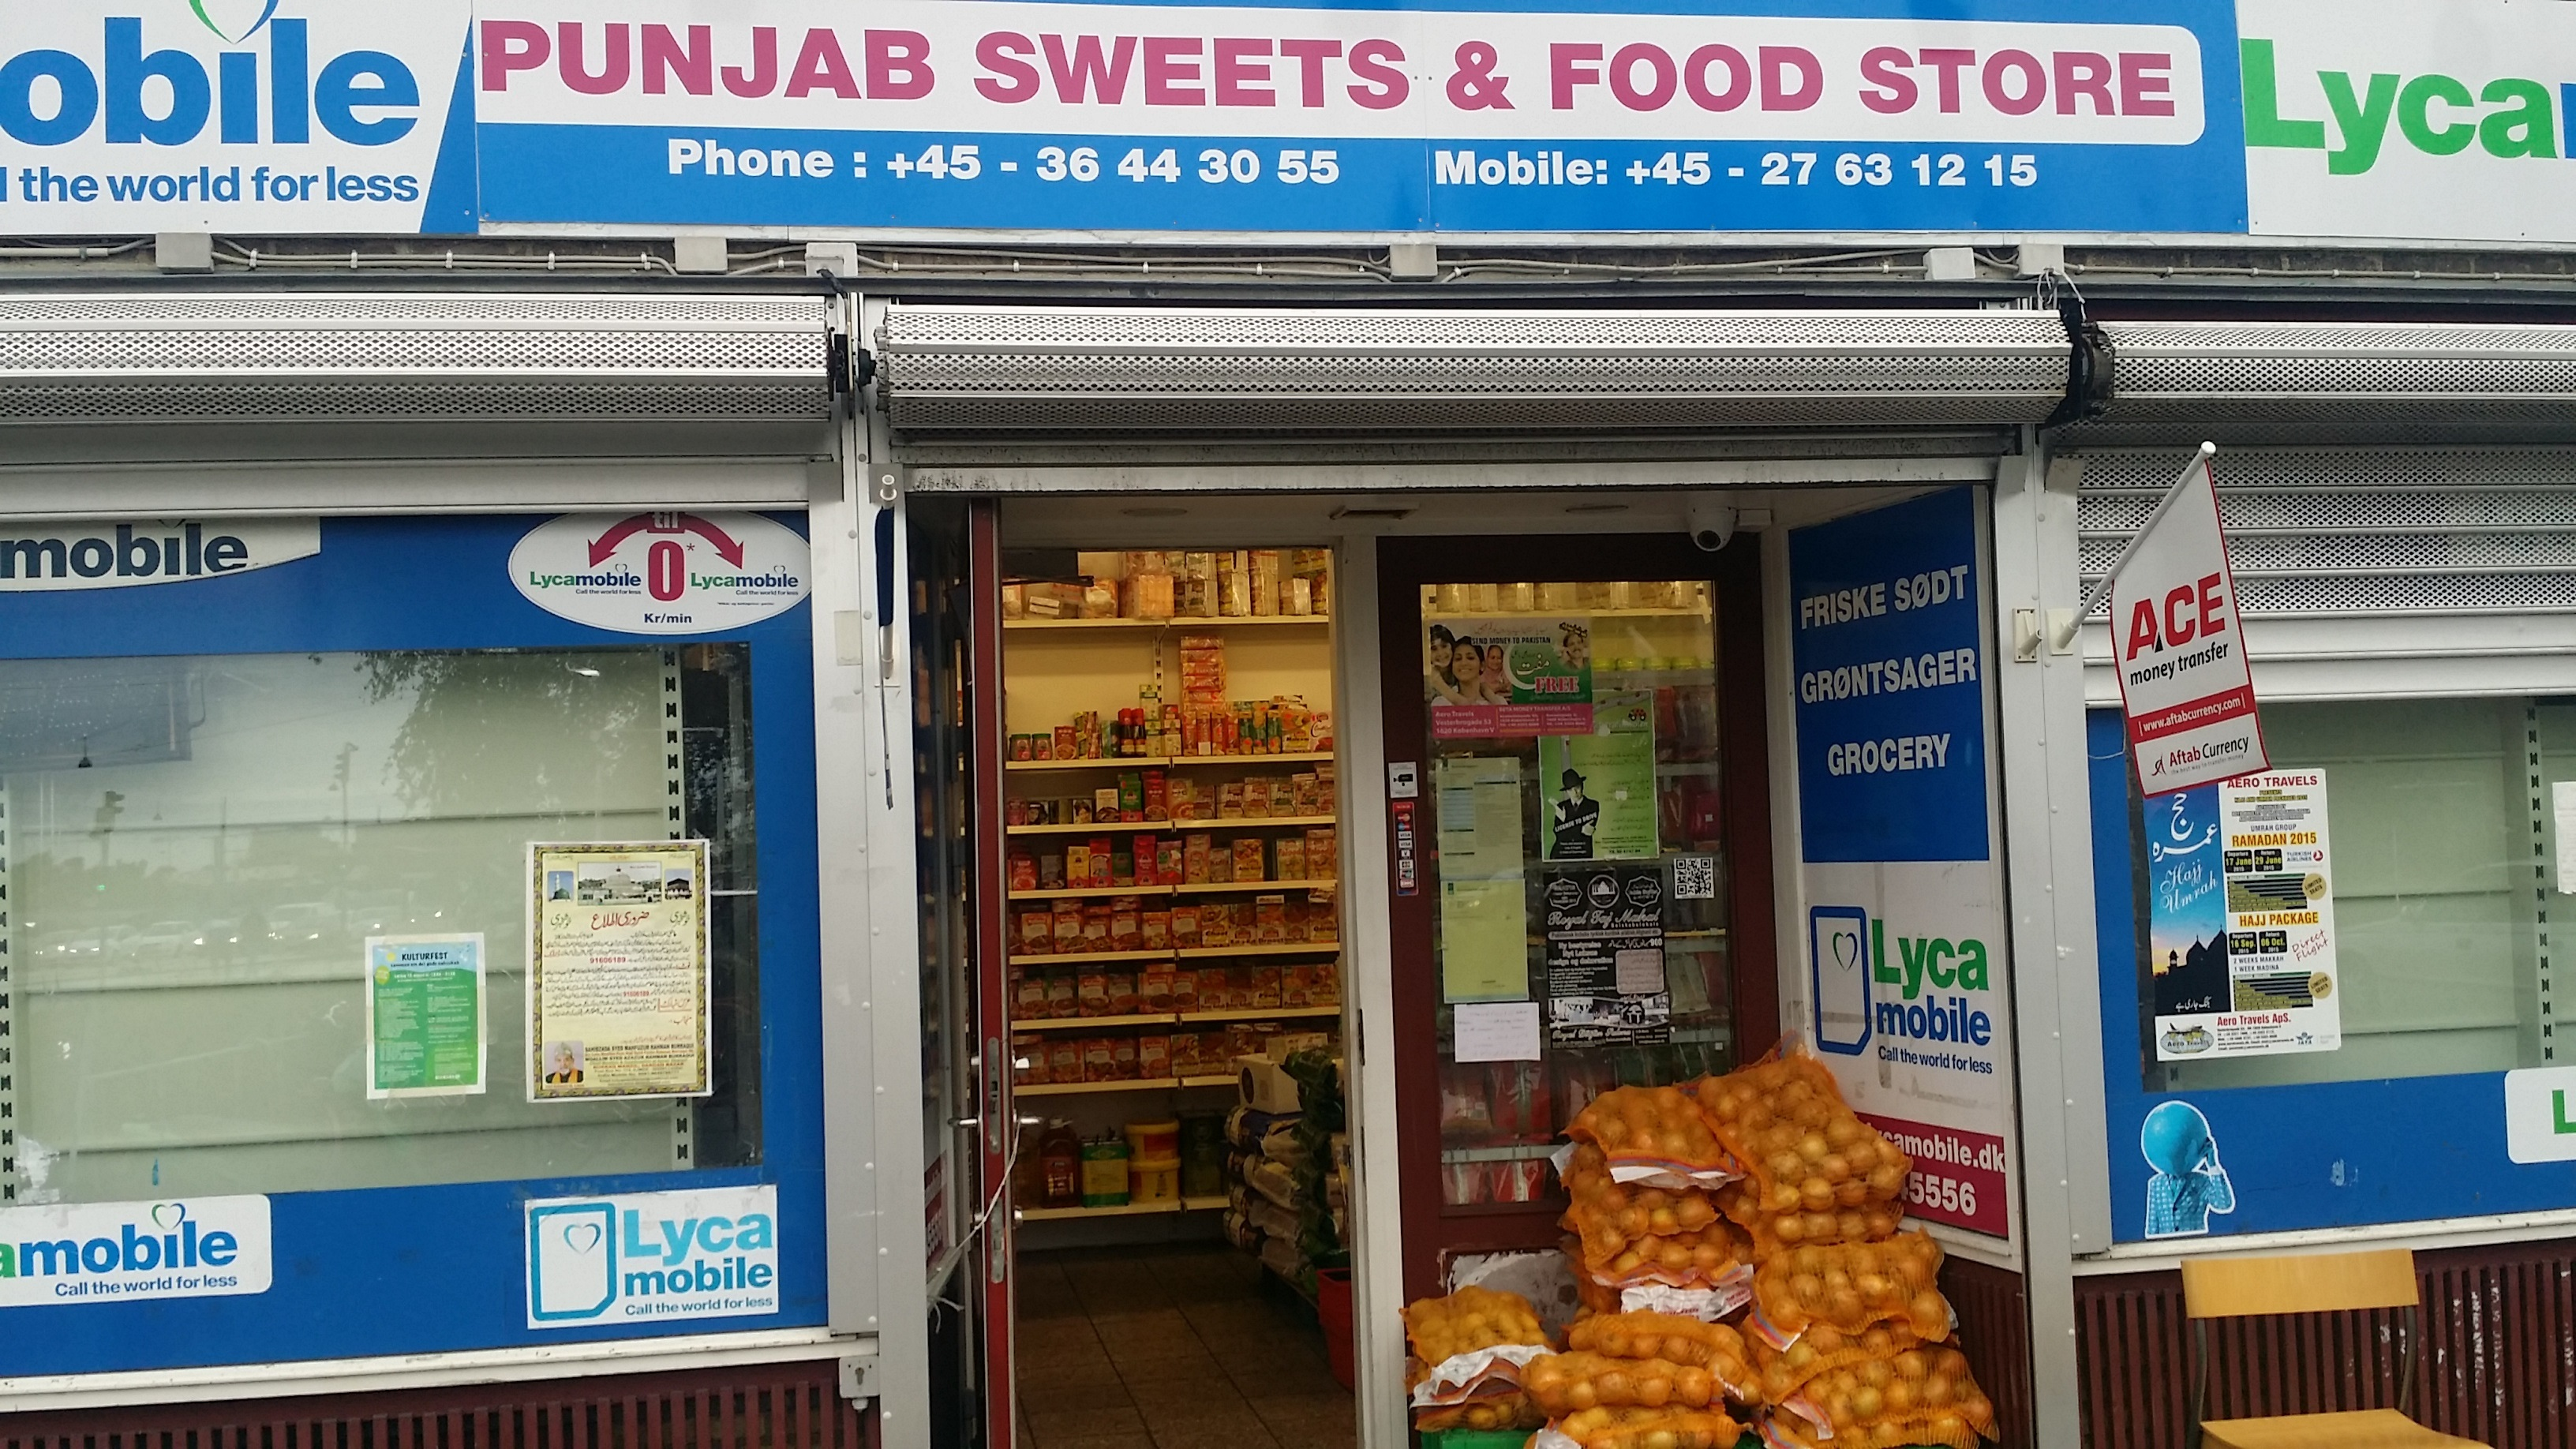 punjab sweets valby